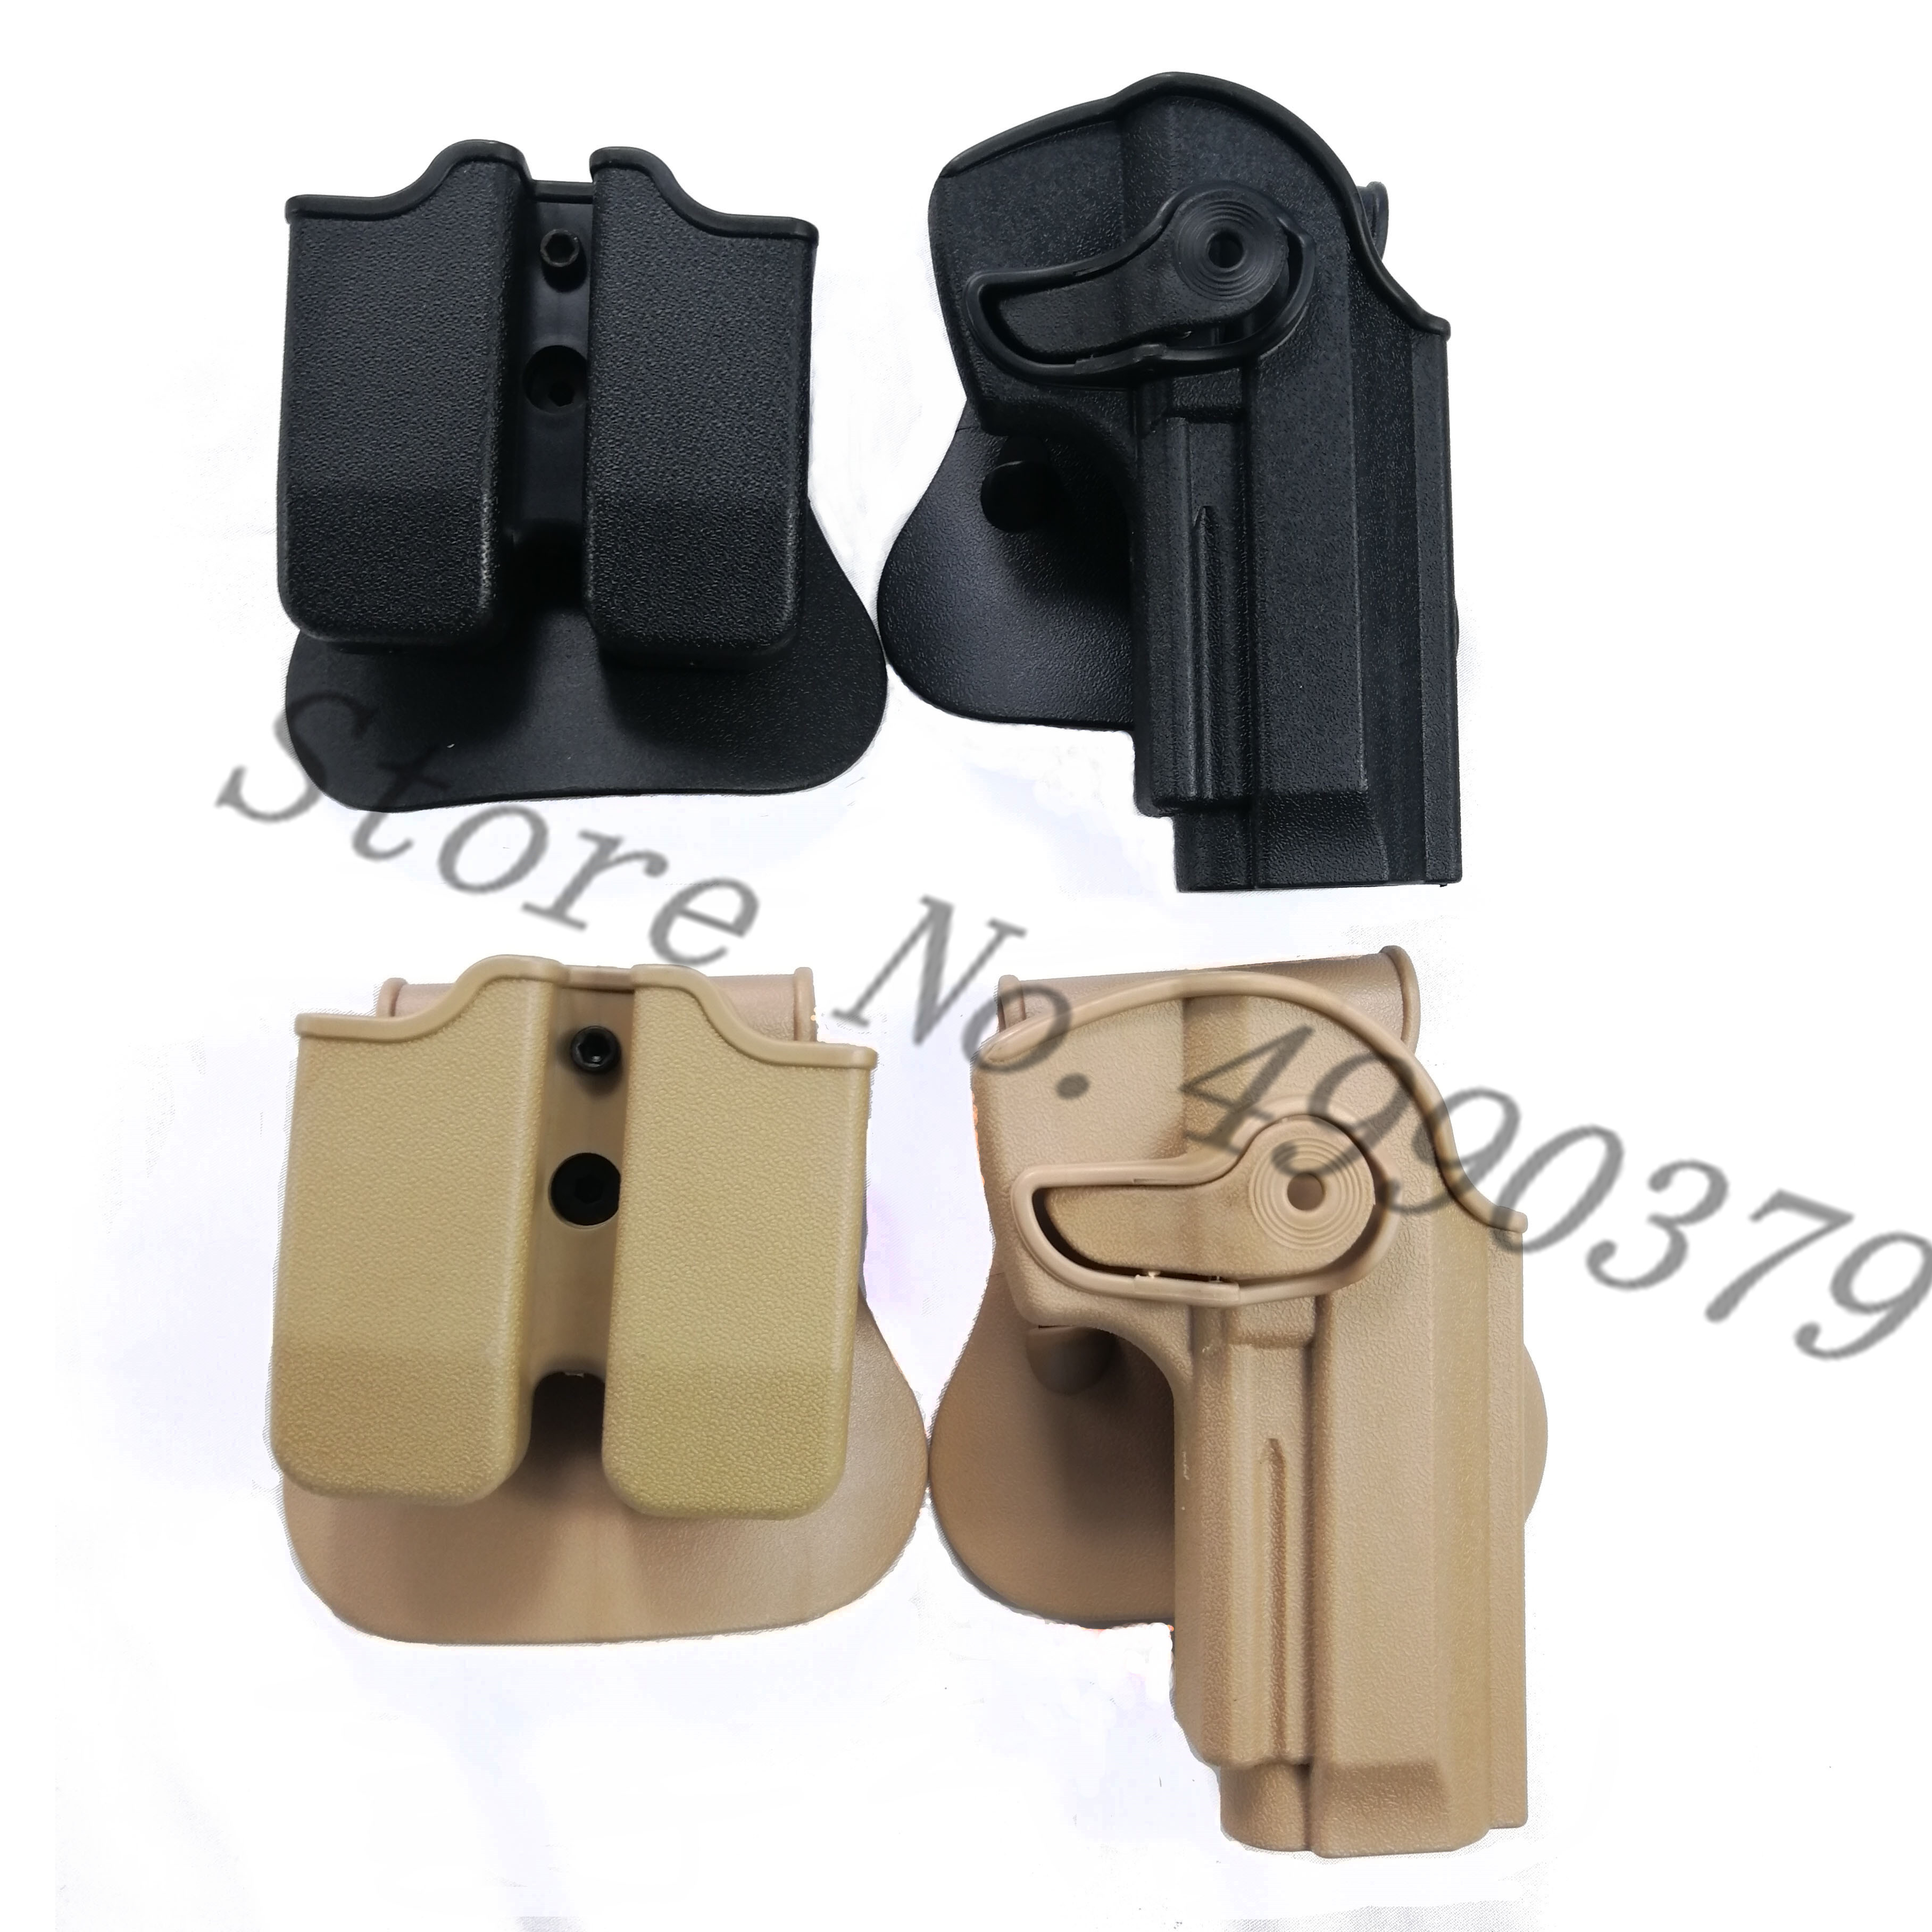 M9 Holster Tactical IMI Right Hand BERETTA M92 Paddle Pistol Gun Airsoft Case Hunting Accessories